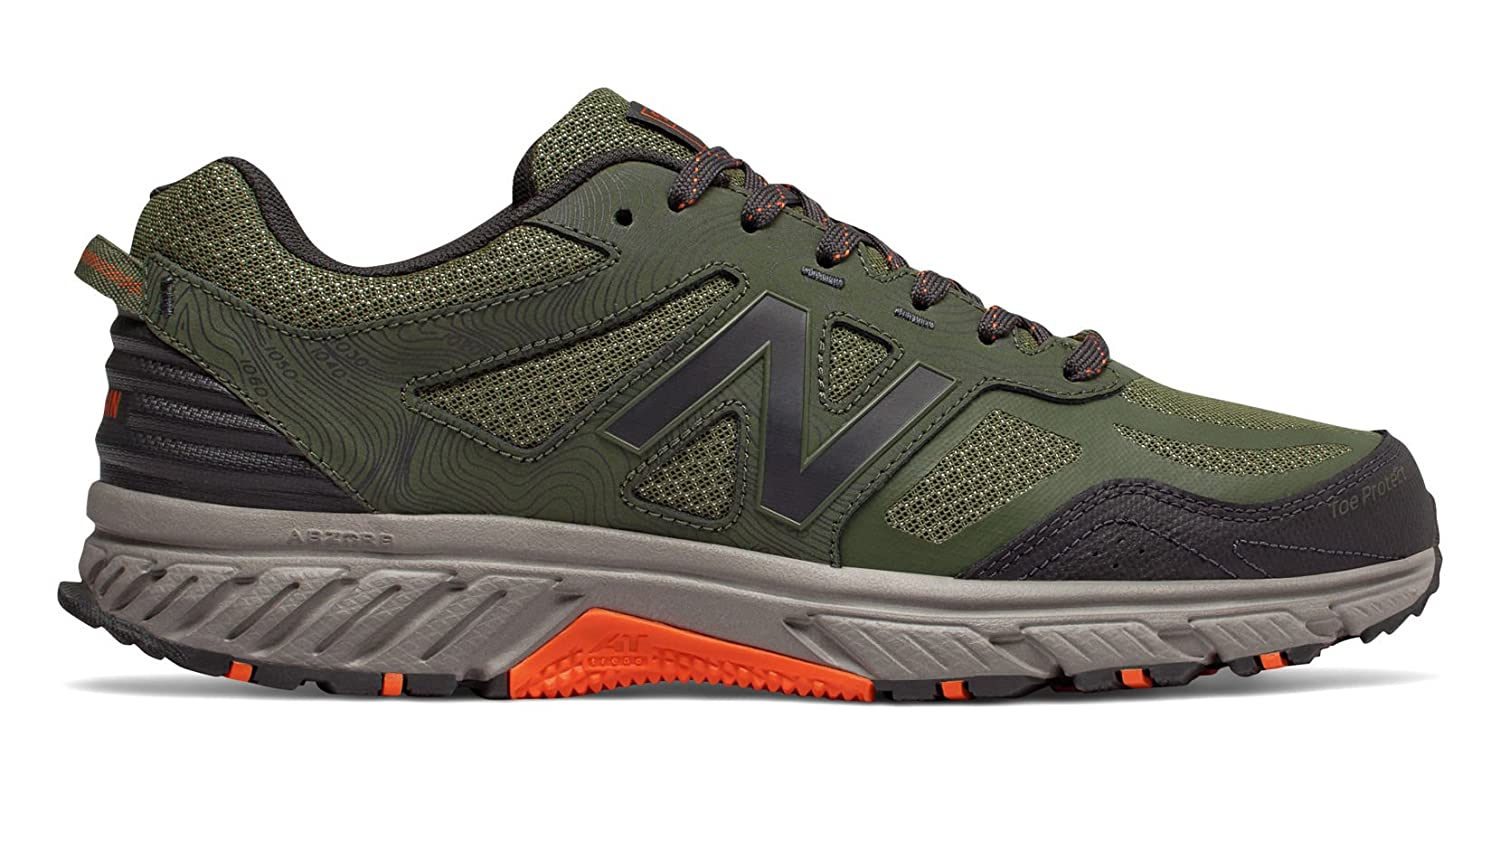 New Balance Men's 510v4 Cushioning Trail Running Shoe B07B6XH3CD 7.5 D(M) US|Dark Covert Green/Phantom/Bengal Tiger